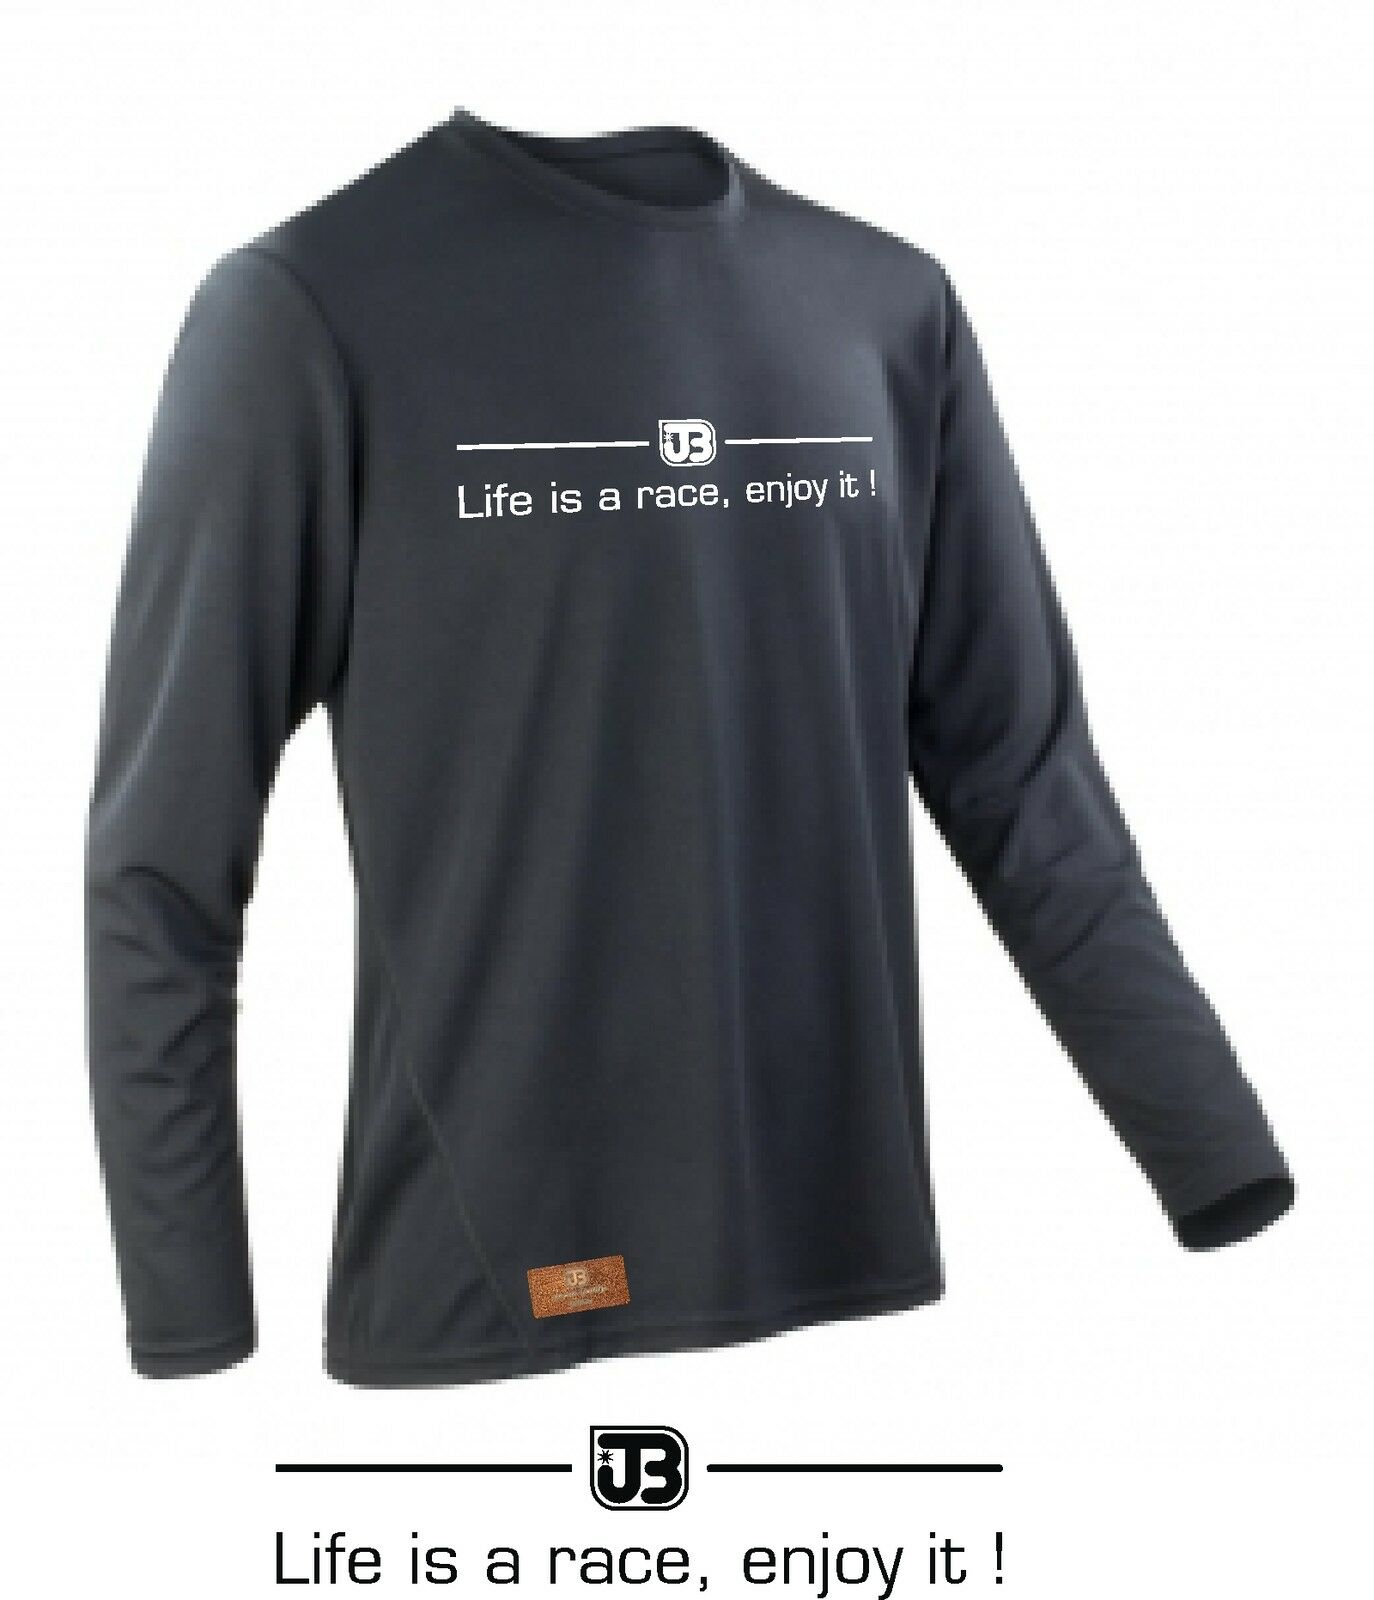 Jollify Life Is a Race, Enjoy It  Shirt Tricot MTB Bike Dh XC Am Enduro Jersey